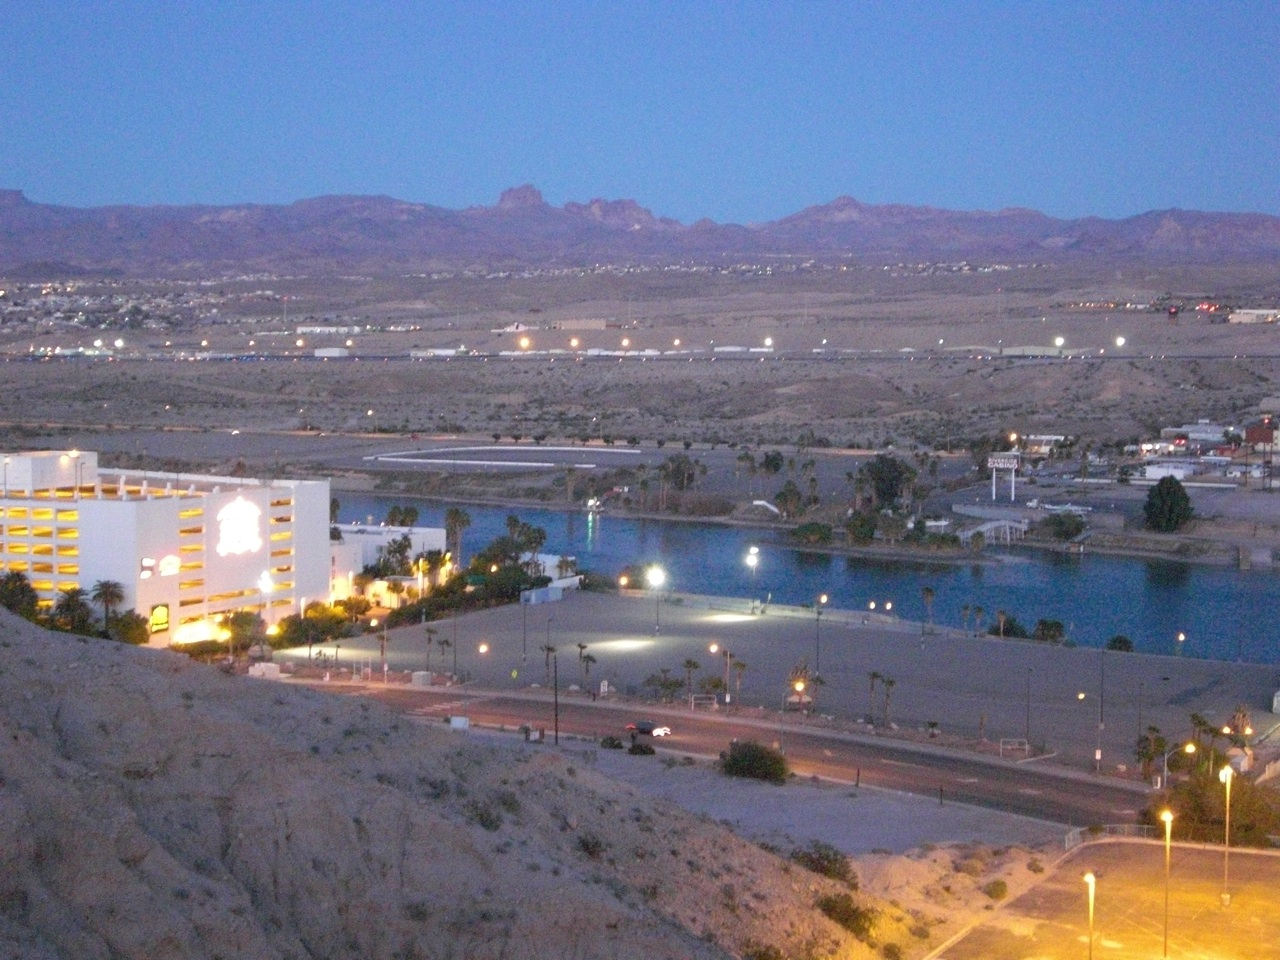 Another Angle Of Our View On The Bluff Overlooking The River Palms Casino